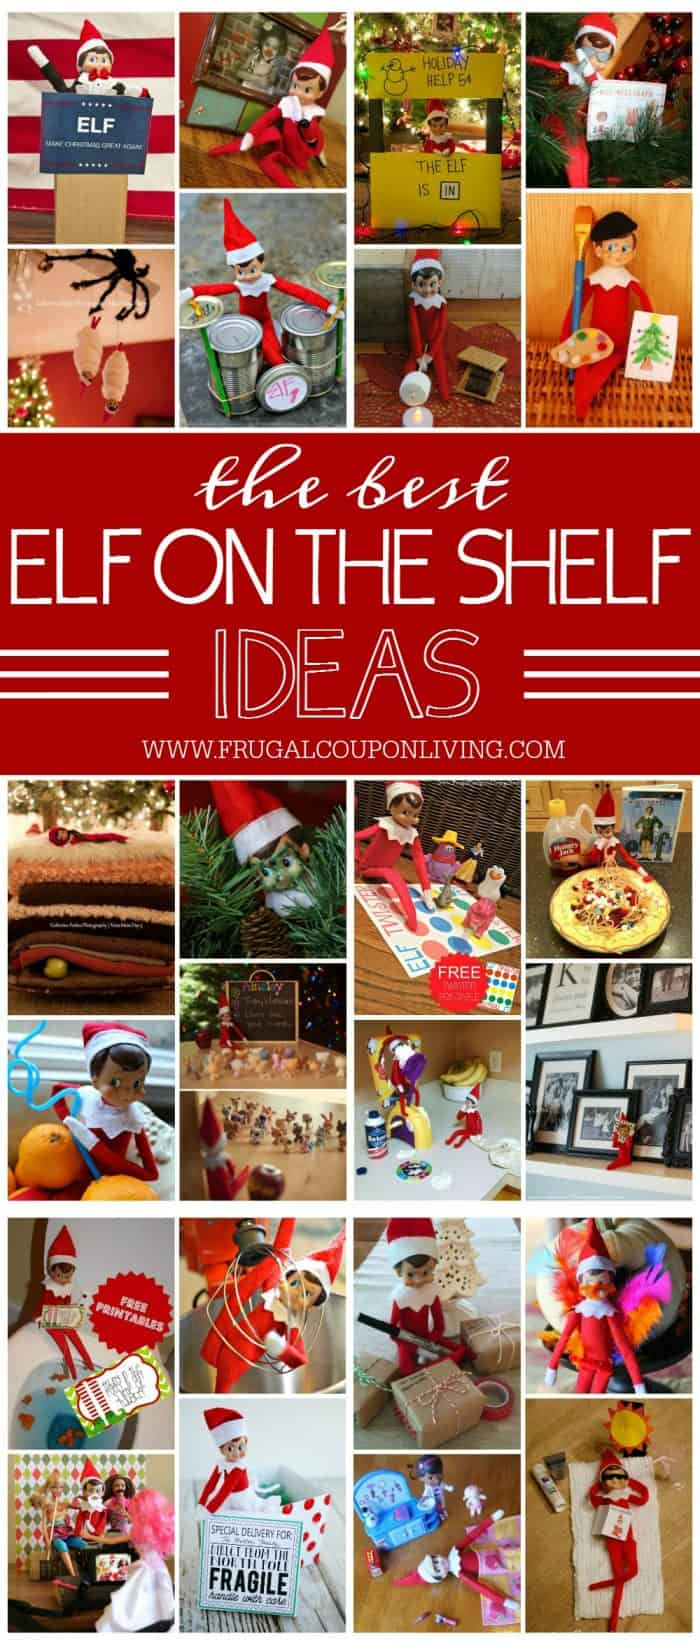 the-best-elf-on-the-shelf-ideas-frugal-coupon-living